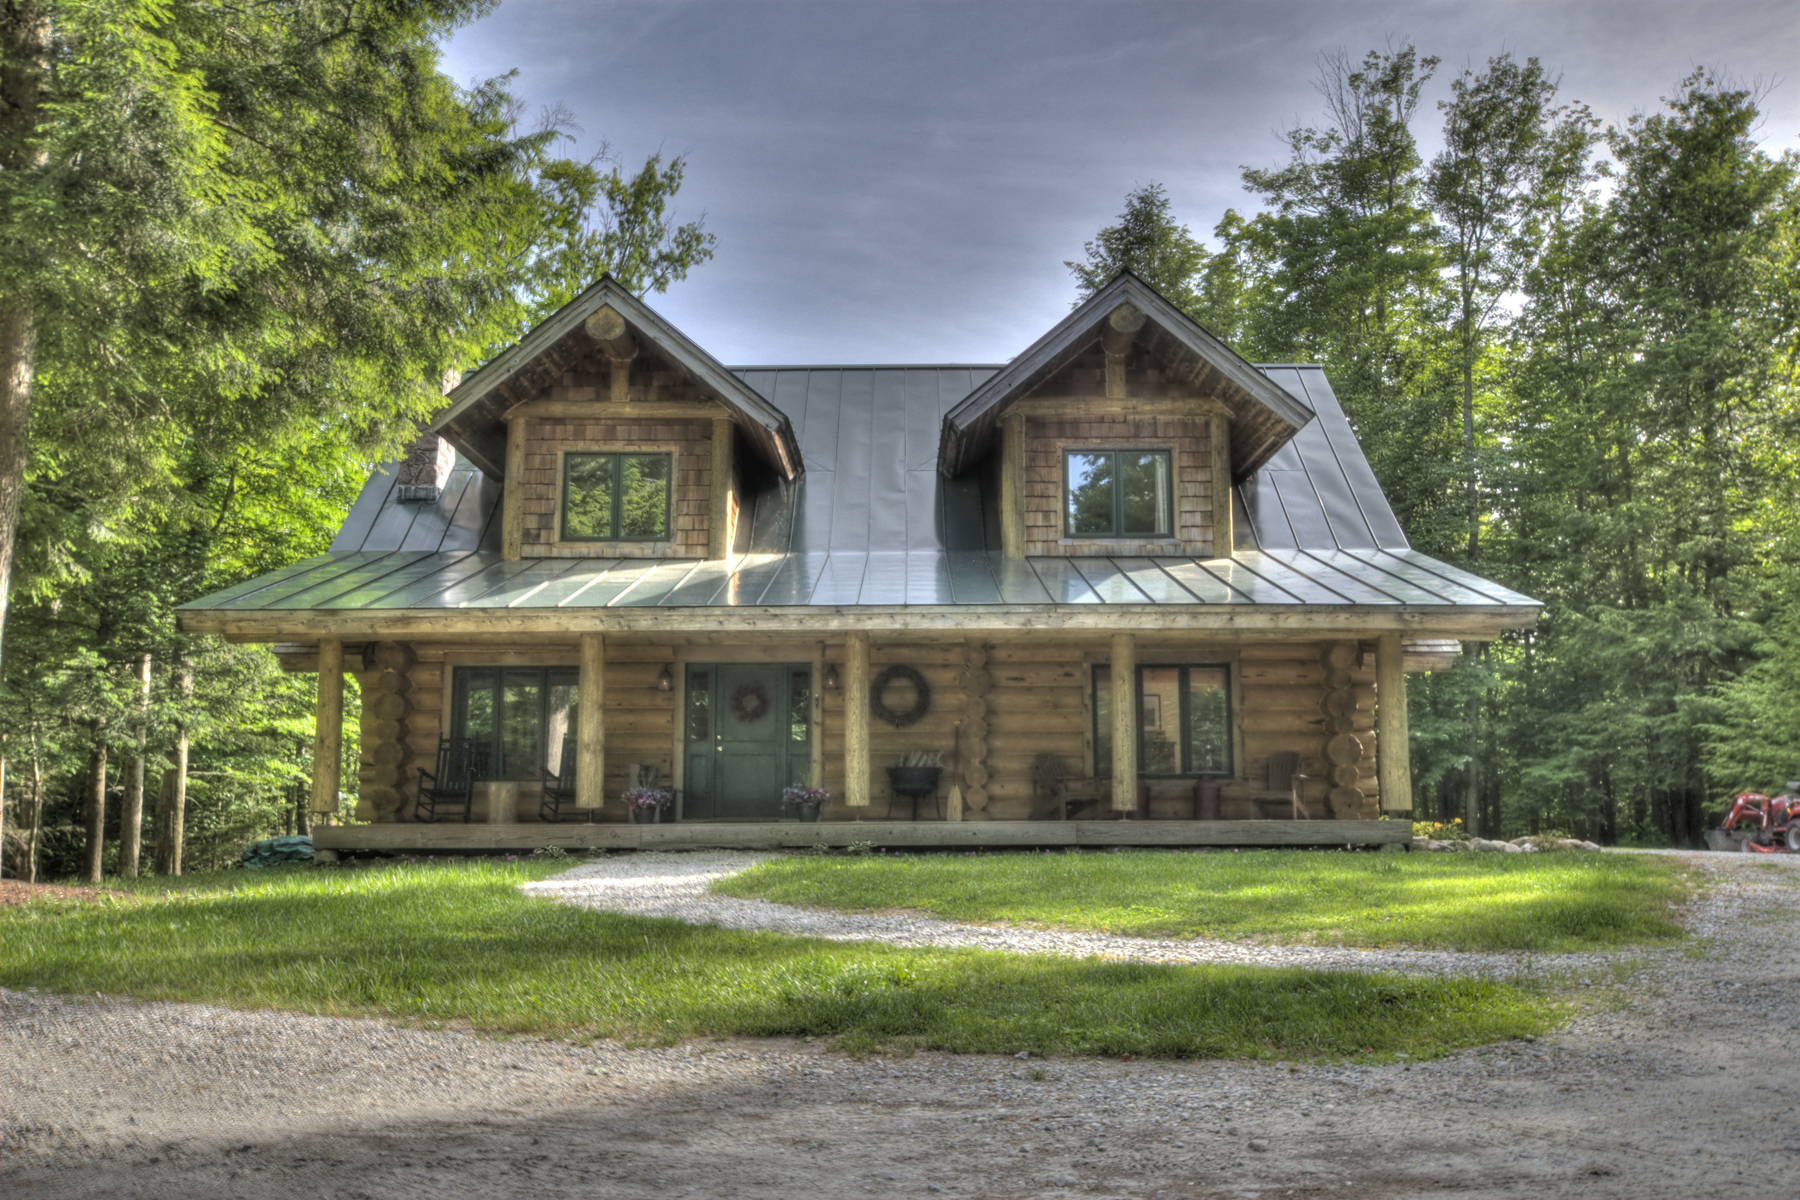 Single Family Home for Sale at Custom Built Log Home on 8+ Private Acres 7 Beebe Hill Rd Chittenden, Vermont 05737 United States